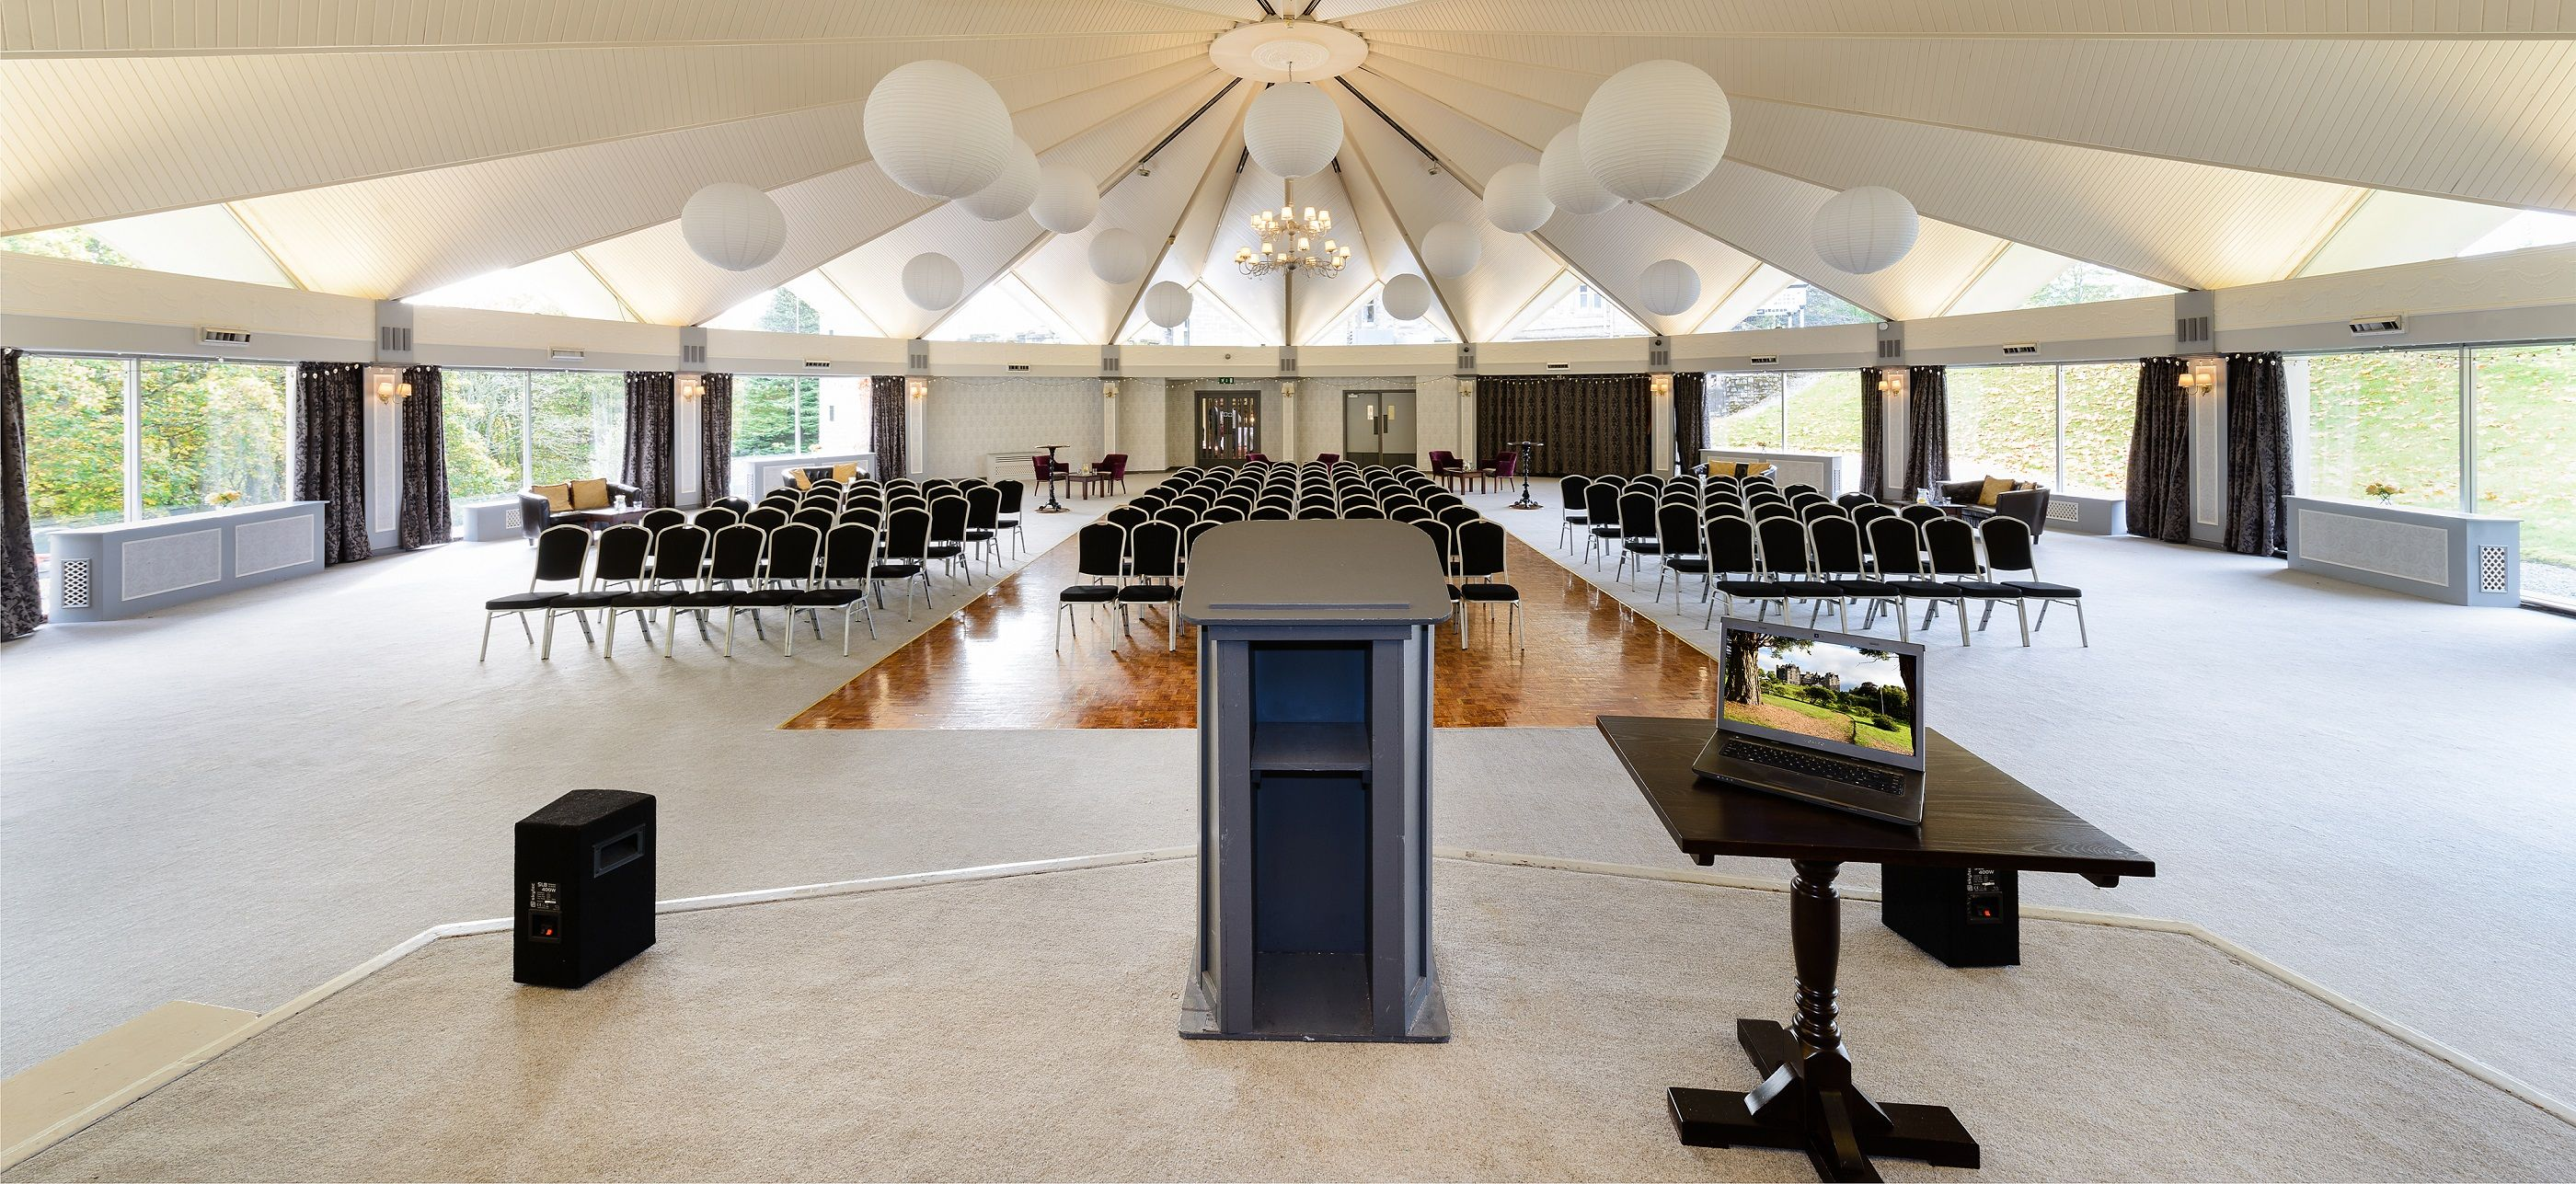 Think of the possibilities in a room like this atholl suite in atholl palace hotel